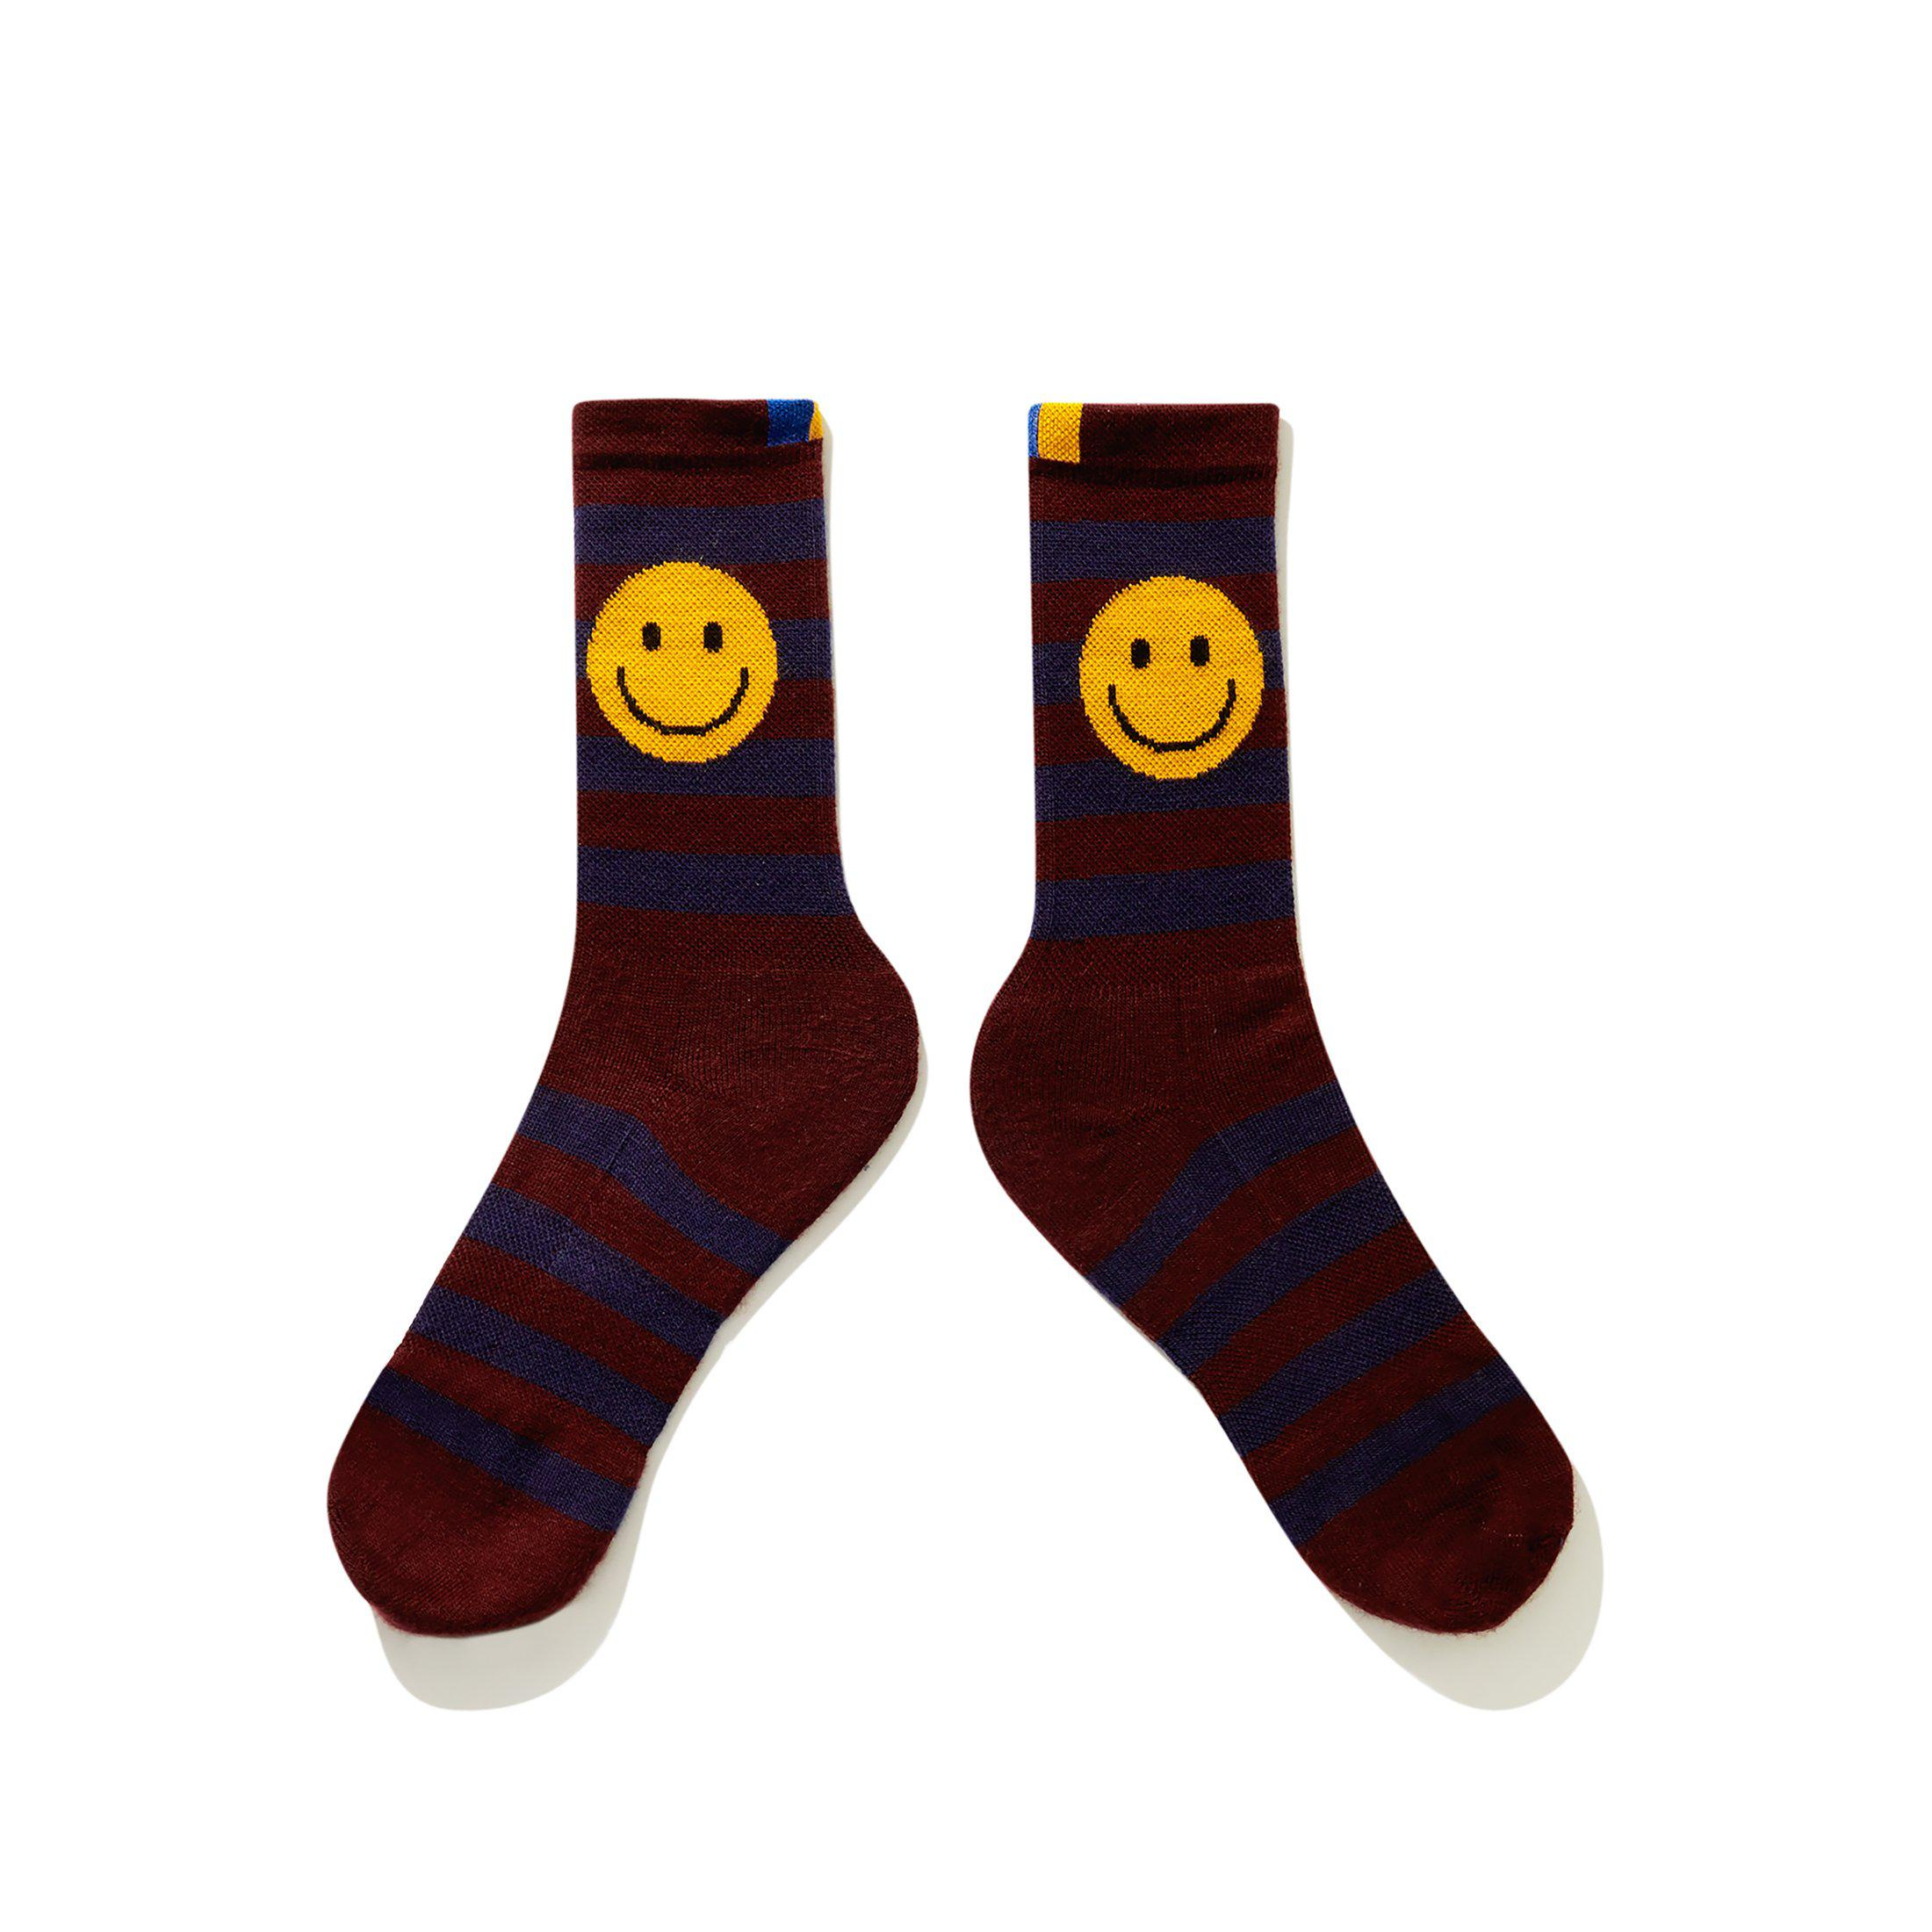 The Women's Rugby Smile Sock - Wine/Navy